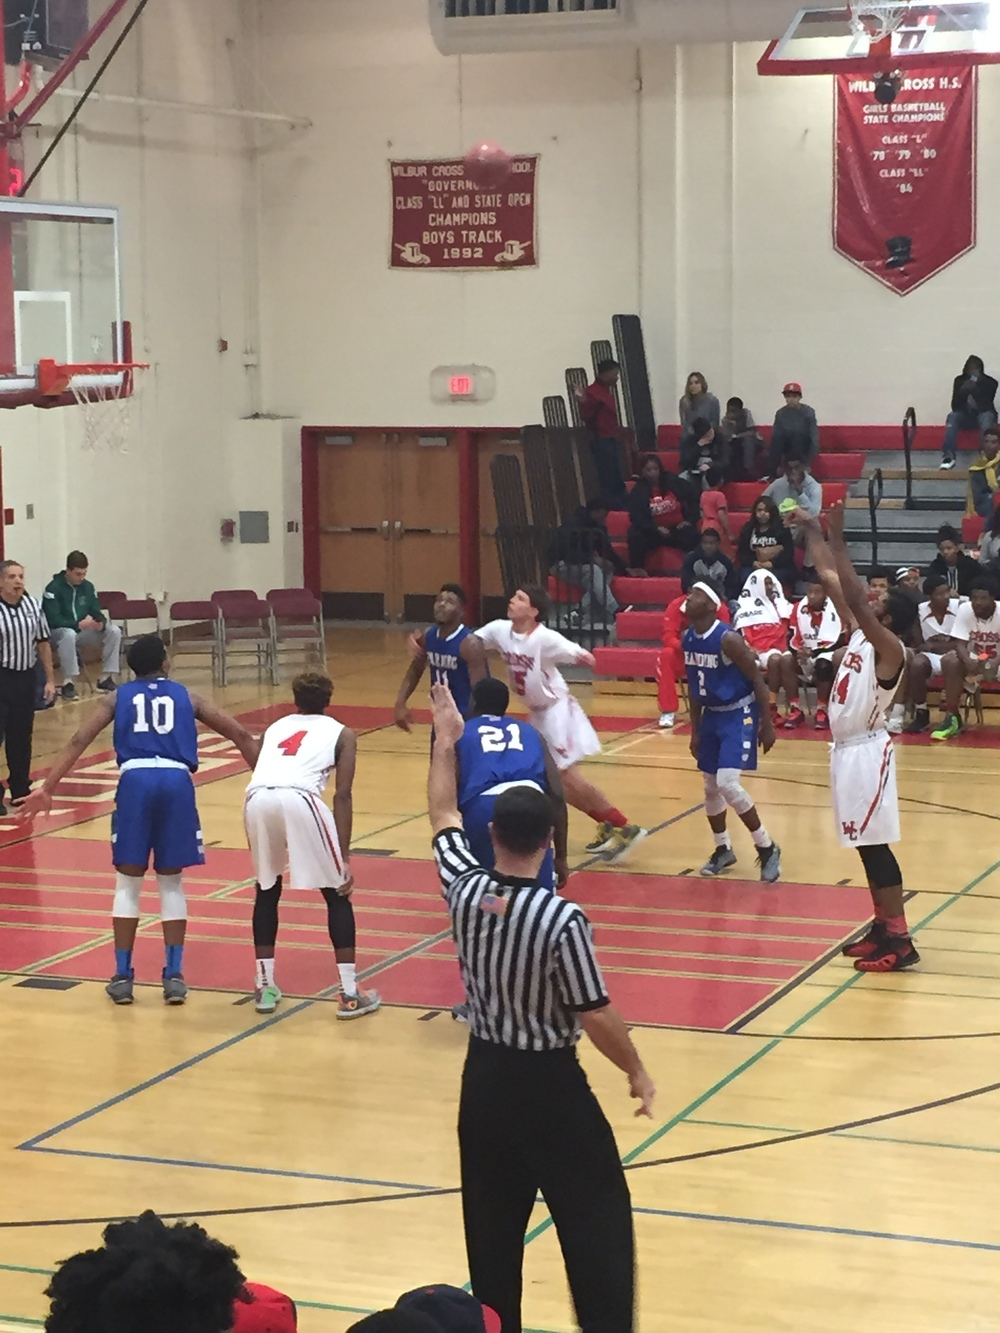 Wilbur Cross senior, Robert Durant, takes foul shot against Harding. Provided by: CTHoopsNews